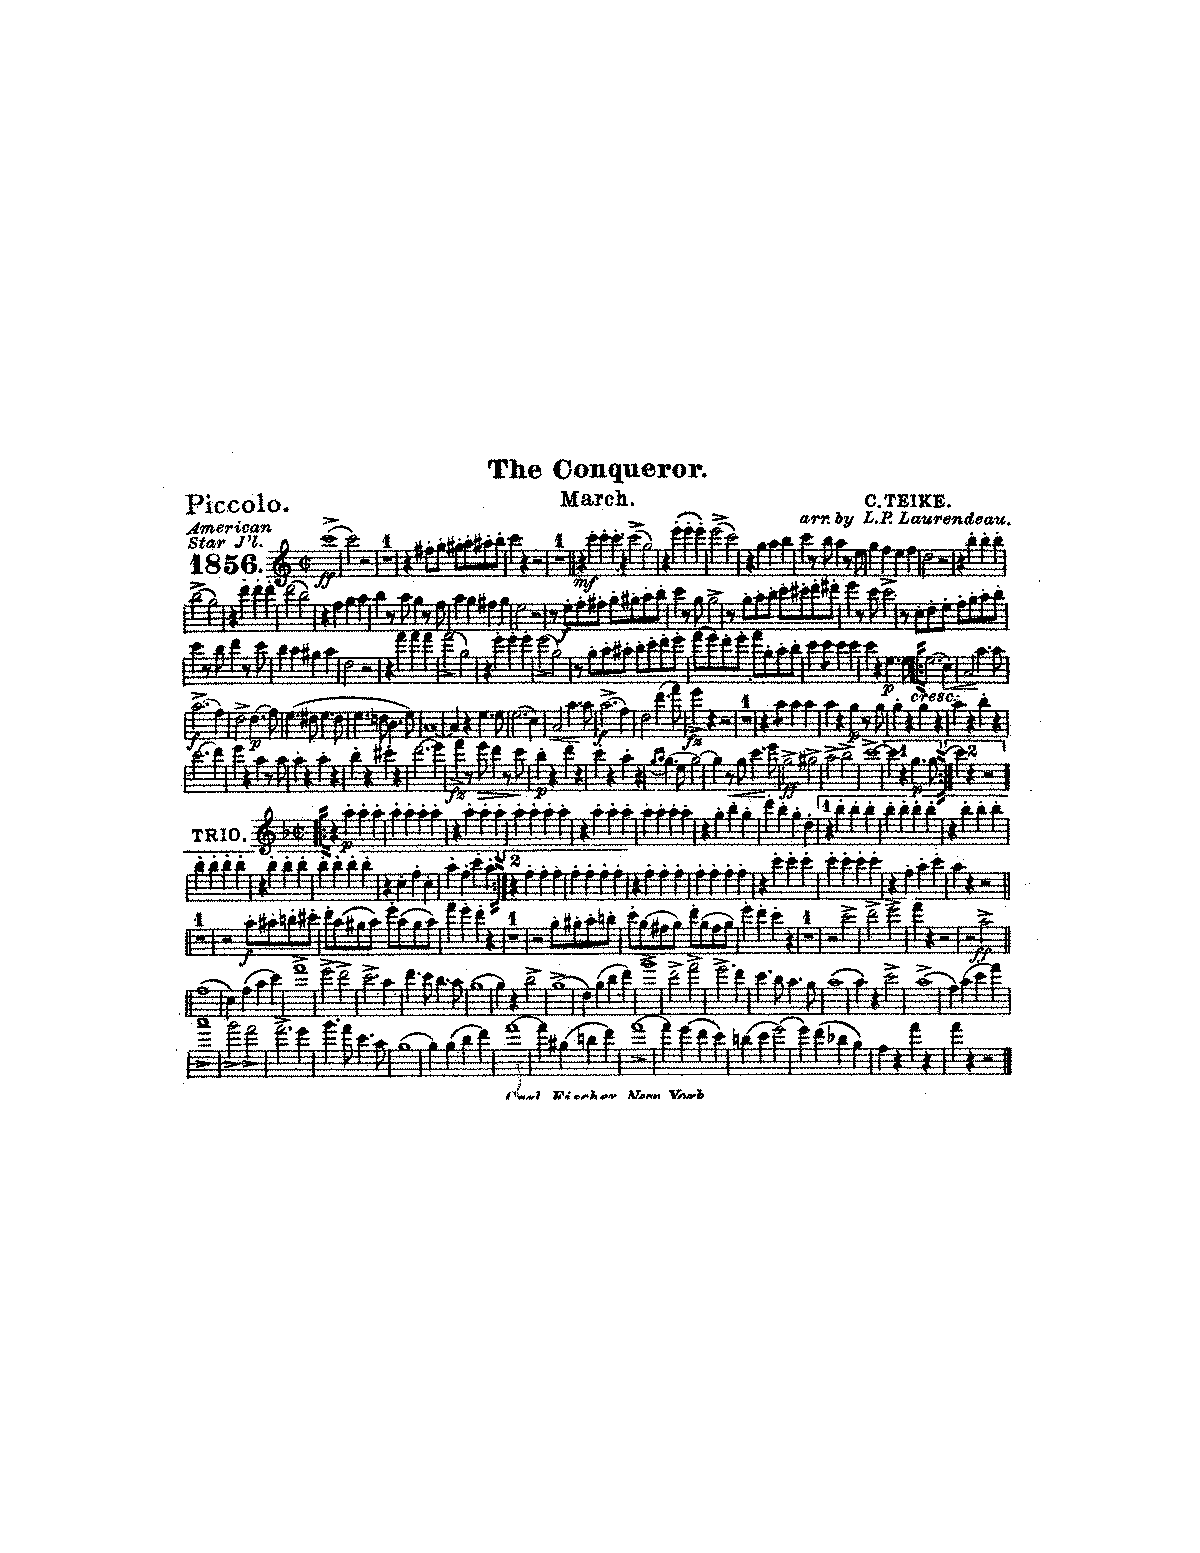 PMLP91073-Teike-The Conqueror (Piccolo).PDF